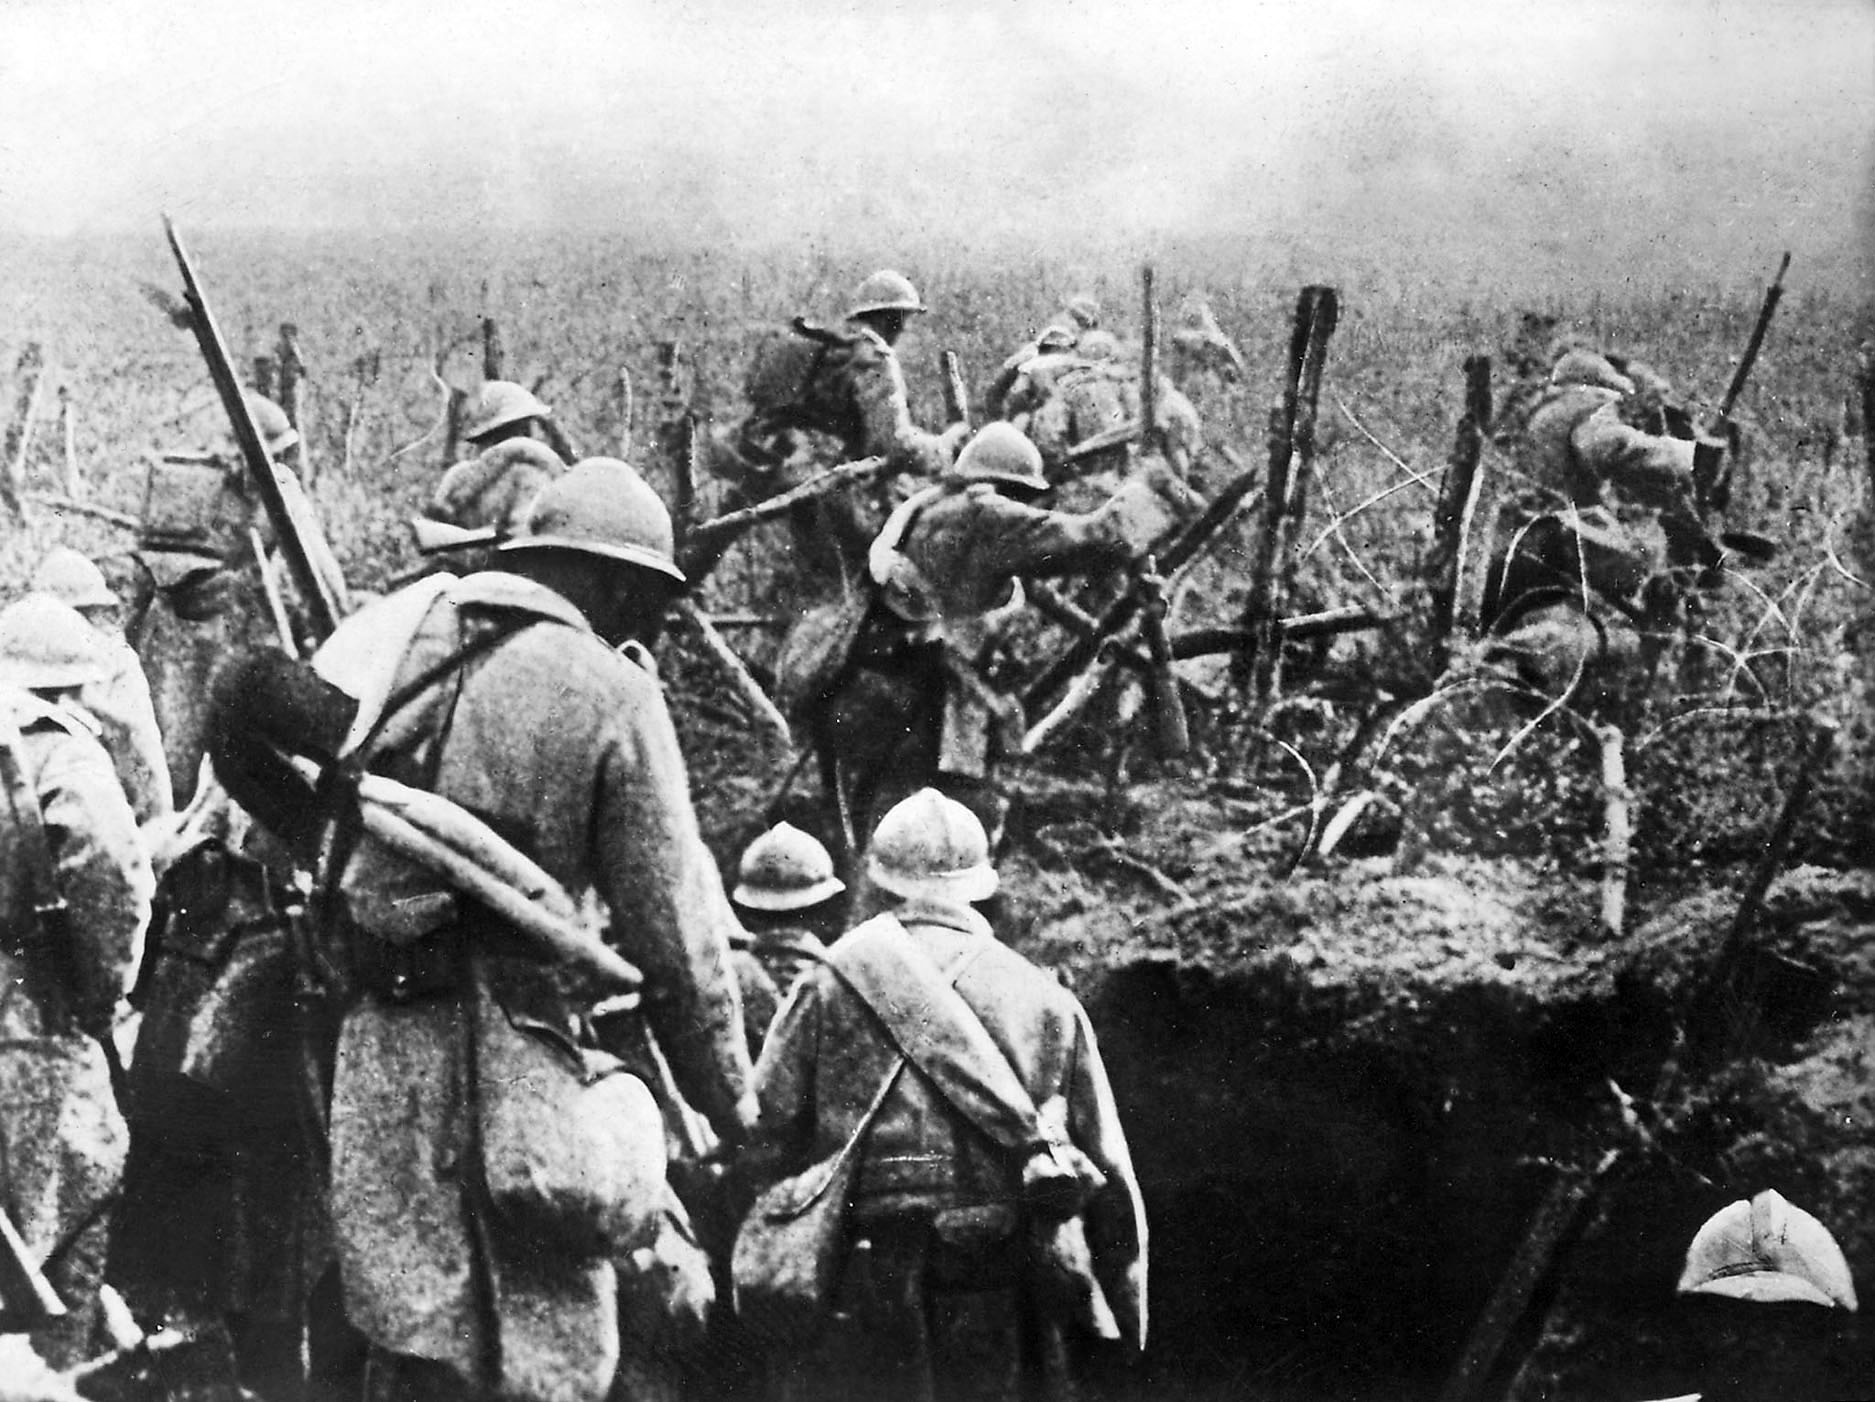 French soldiers in the Verdun trenches, 1916.